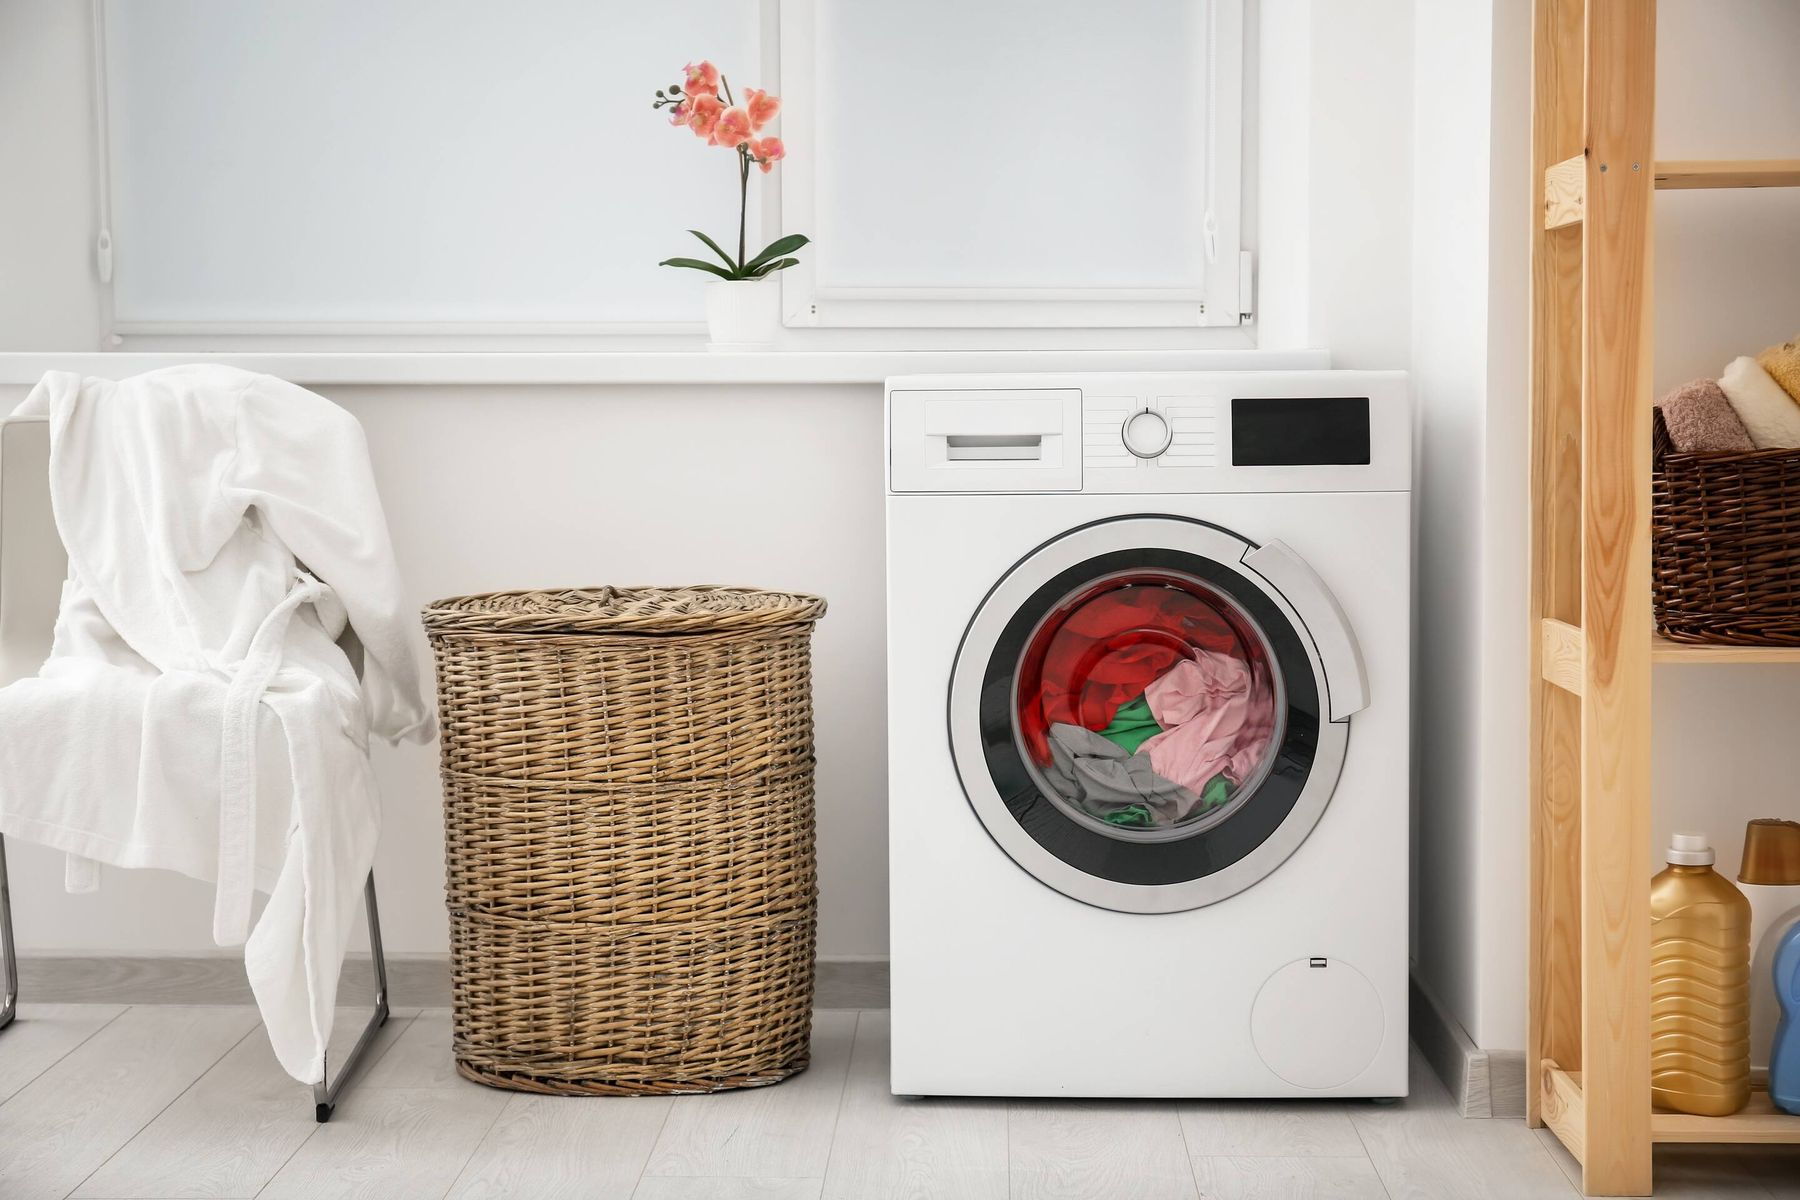 An Easy Instruction Guide For First-Time Washing Machine Users